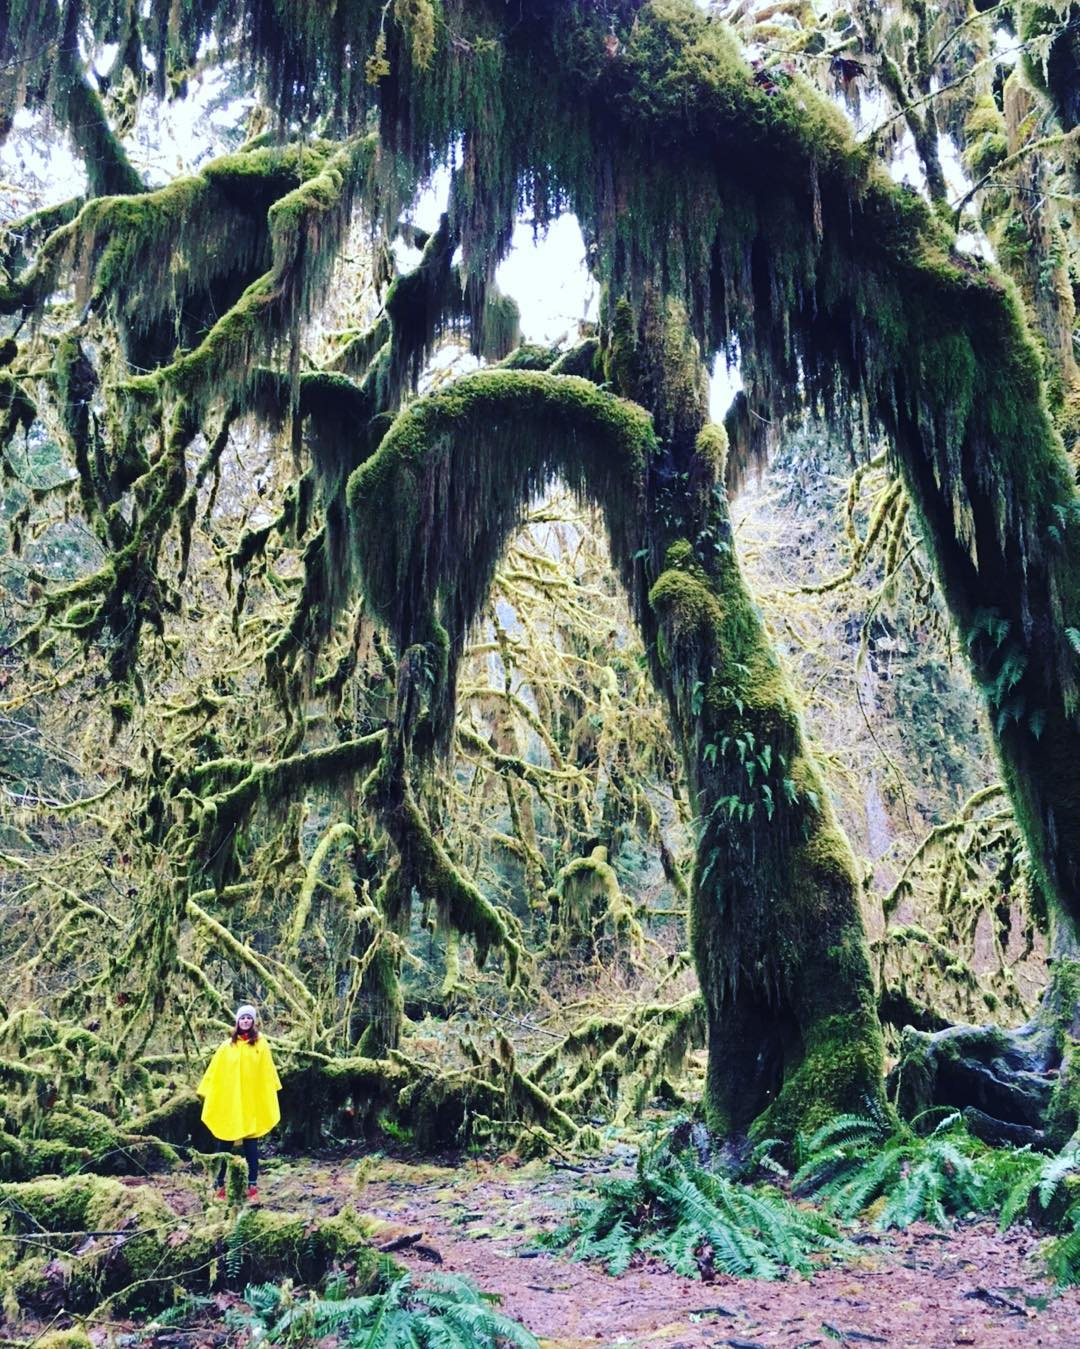 R A I N / F O R E S T Weekend trippin w/ @lizzonya @thefriendlybeard #radparks shot in from @olympicnationalpark ~ soaking in the magical wonderland. #vanlife #nationalpark